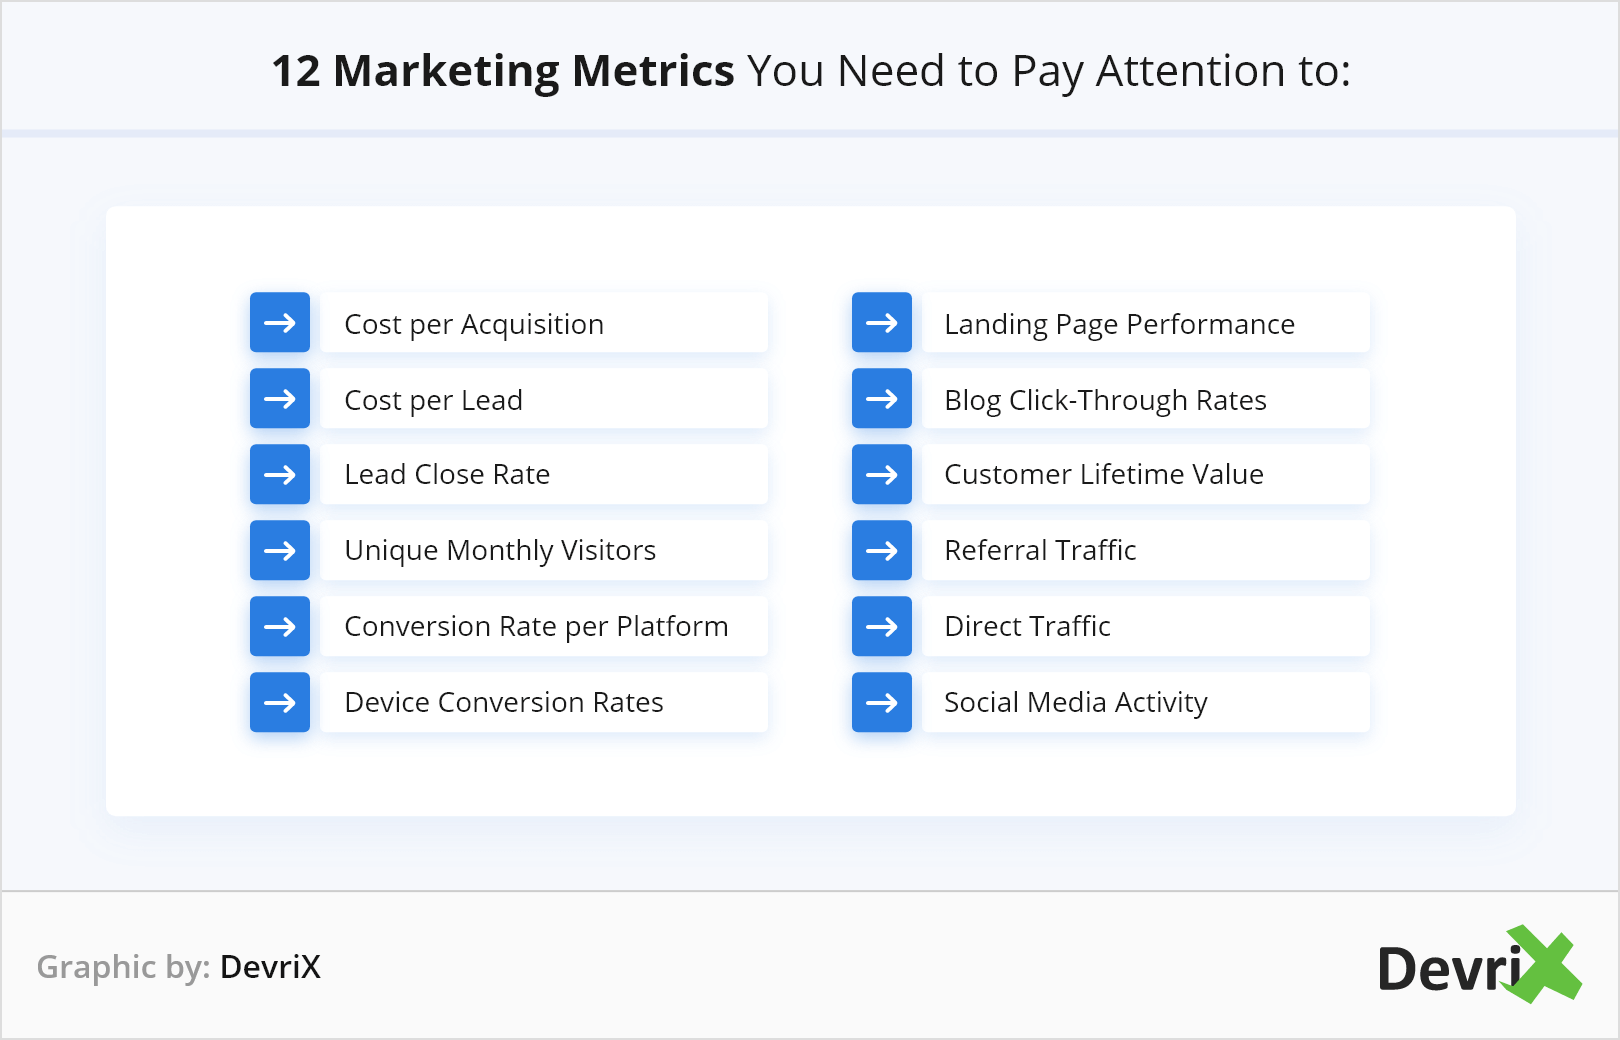 12 Marketing Metrics You Need to Pay Attention